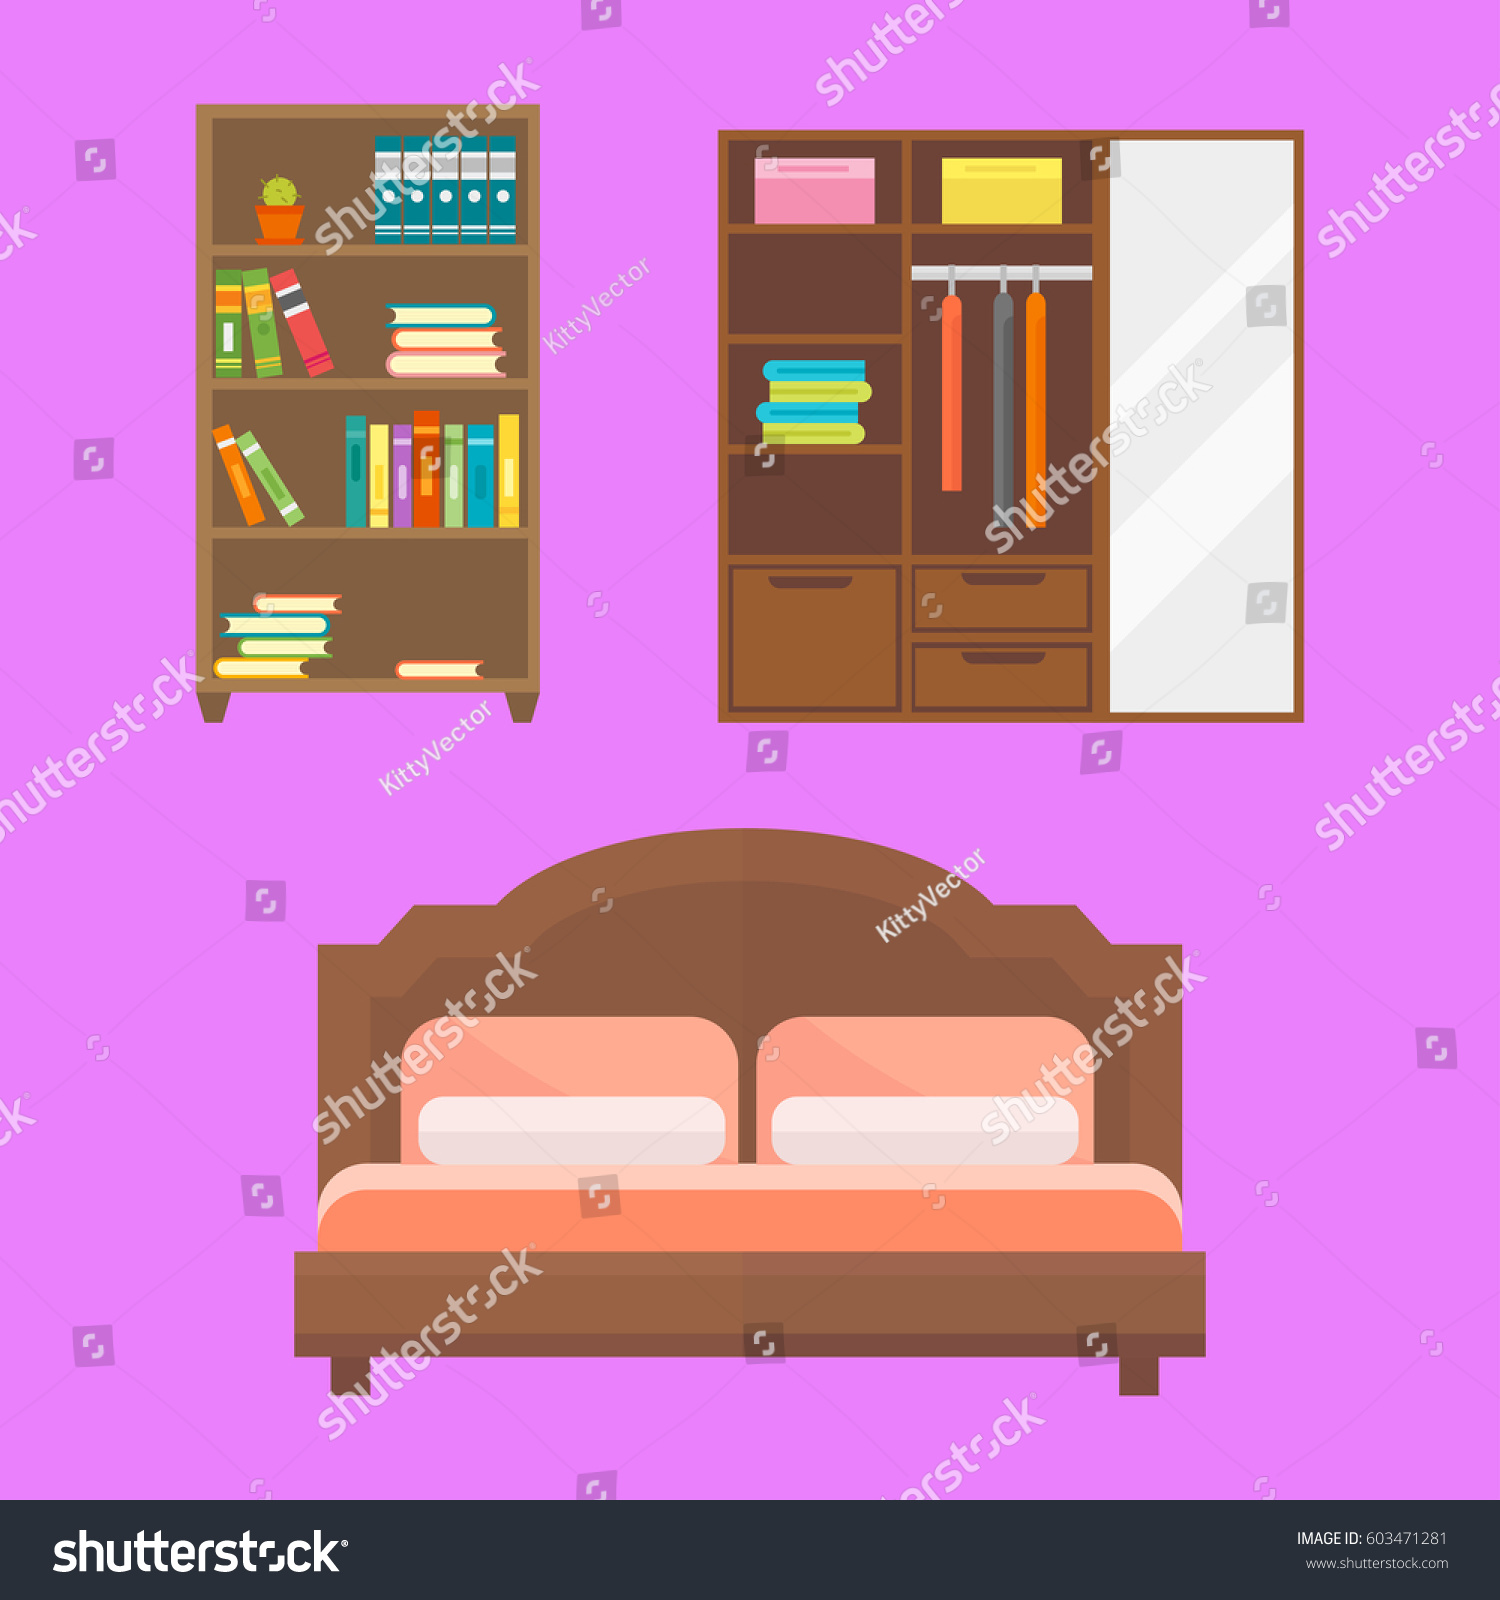 furniture home decor icon set indoor stock vector 603471281 furniture home decor icon set indoor cabinet interior room library office bookshelf modern restroom silhouette decoration